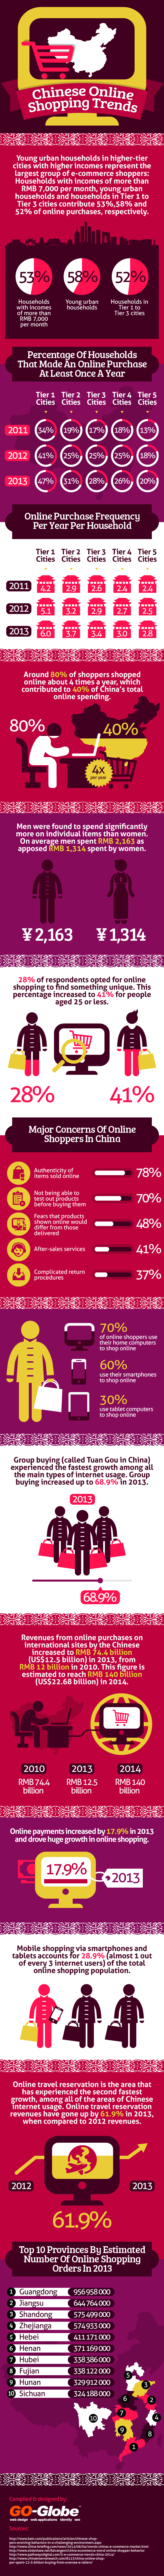 Chinese Online Shopping  - Statistics and Trends